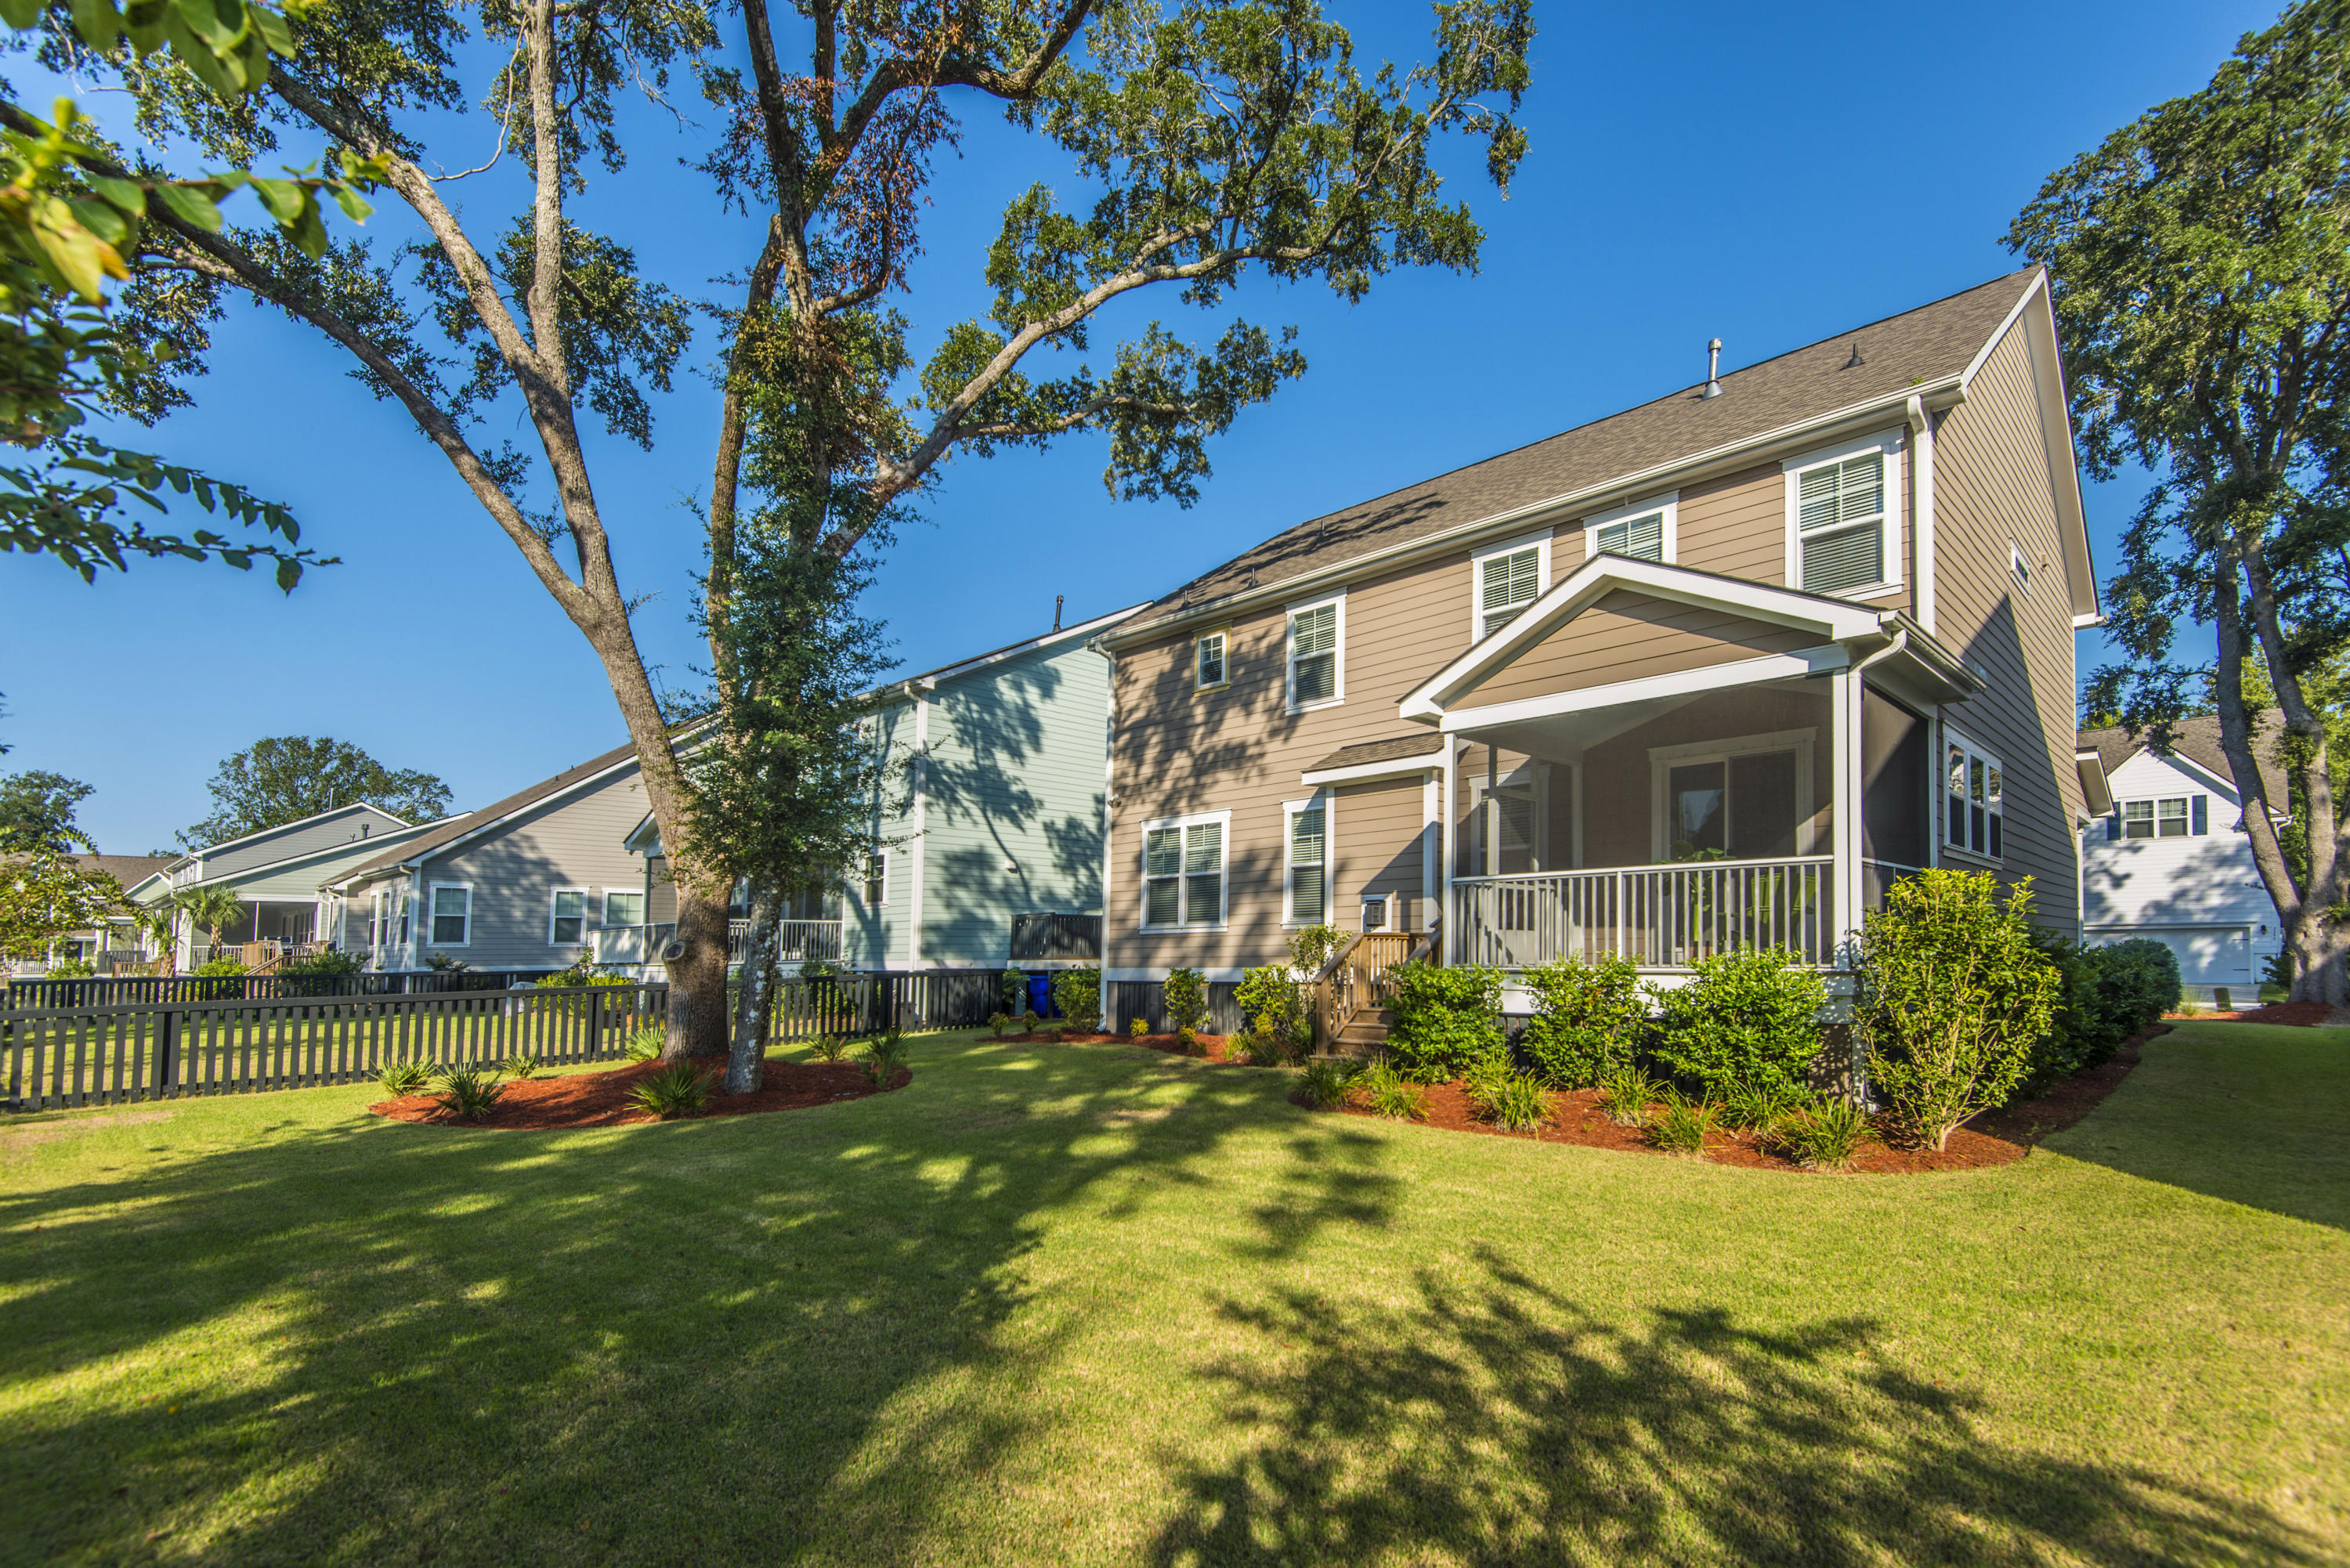 Oyster Point Homes For Sale - 2300 Skyler, Mount Pleasant, SC - 25